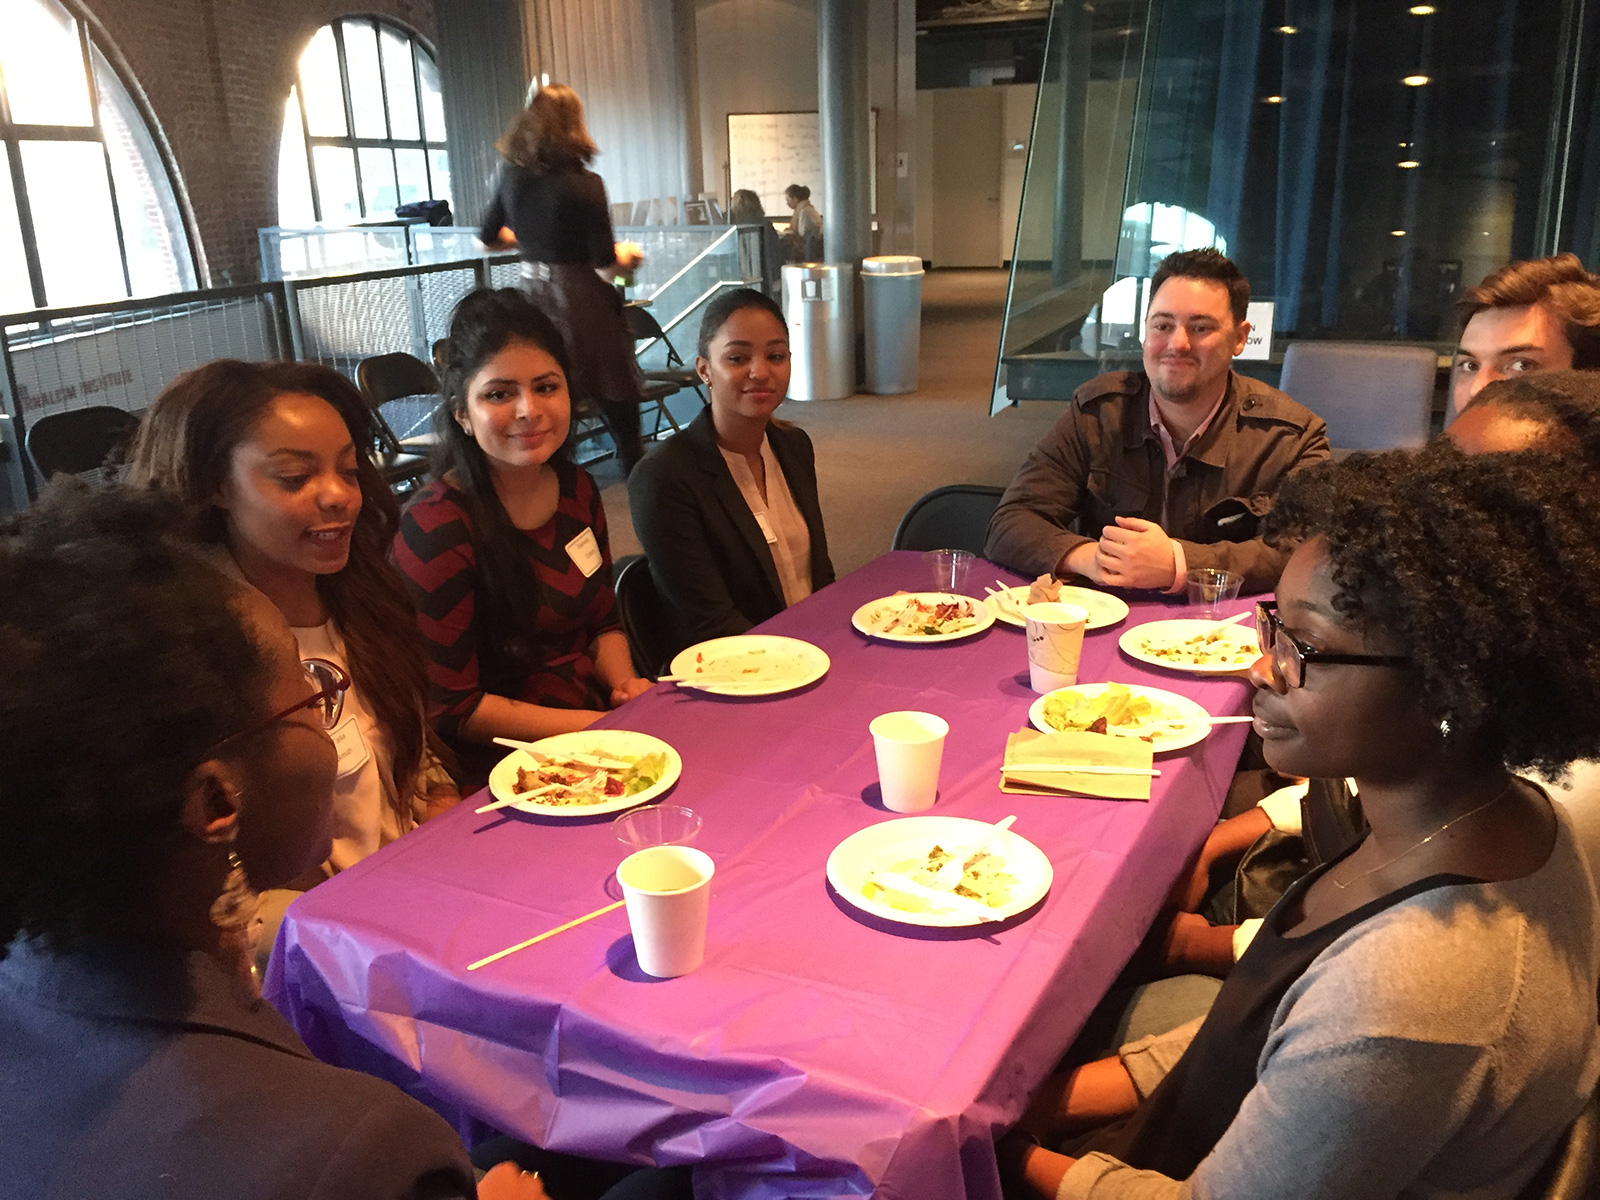 NYU Journalism hosts mentor events to bring students and alum together.